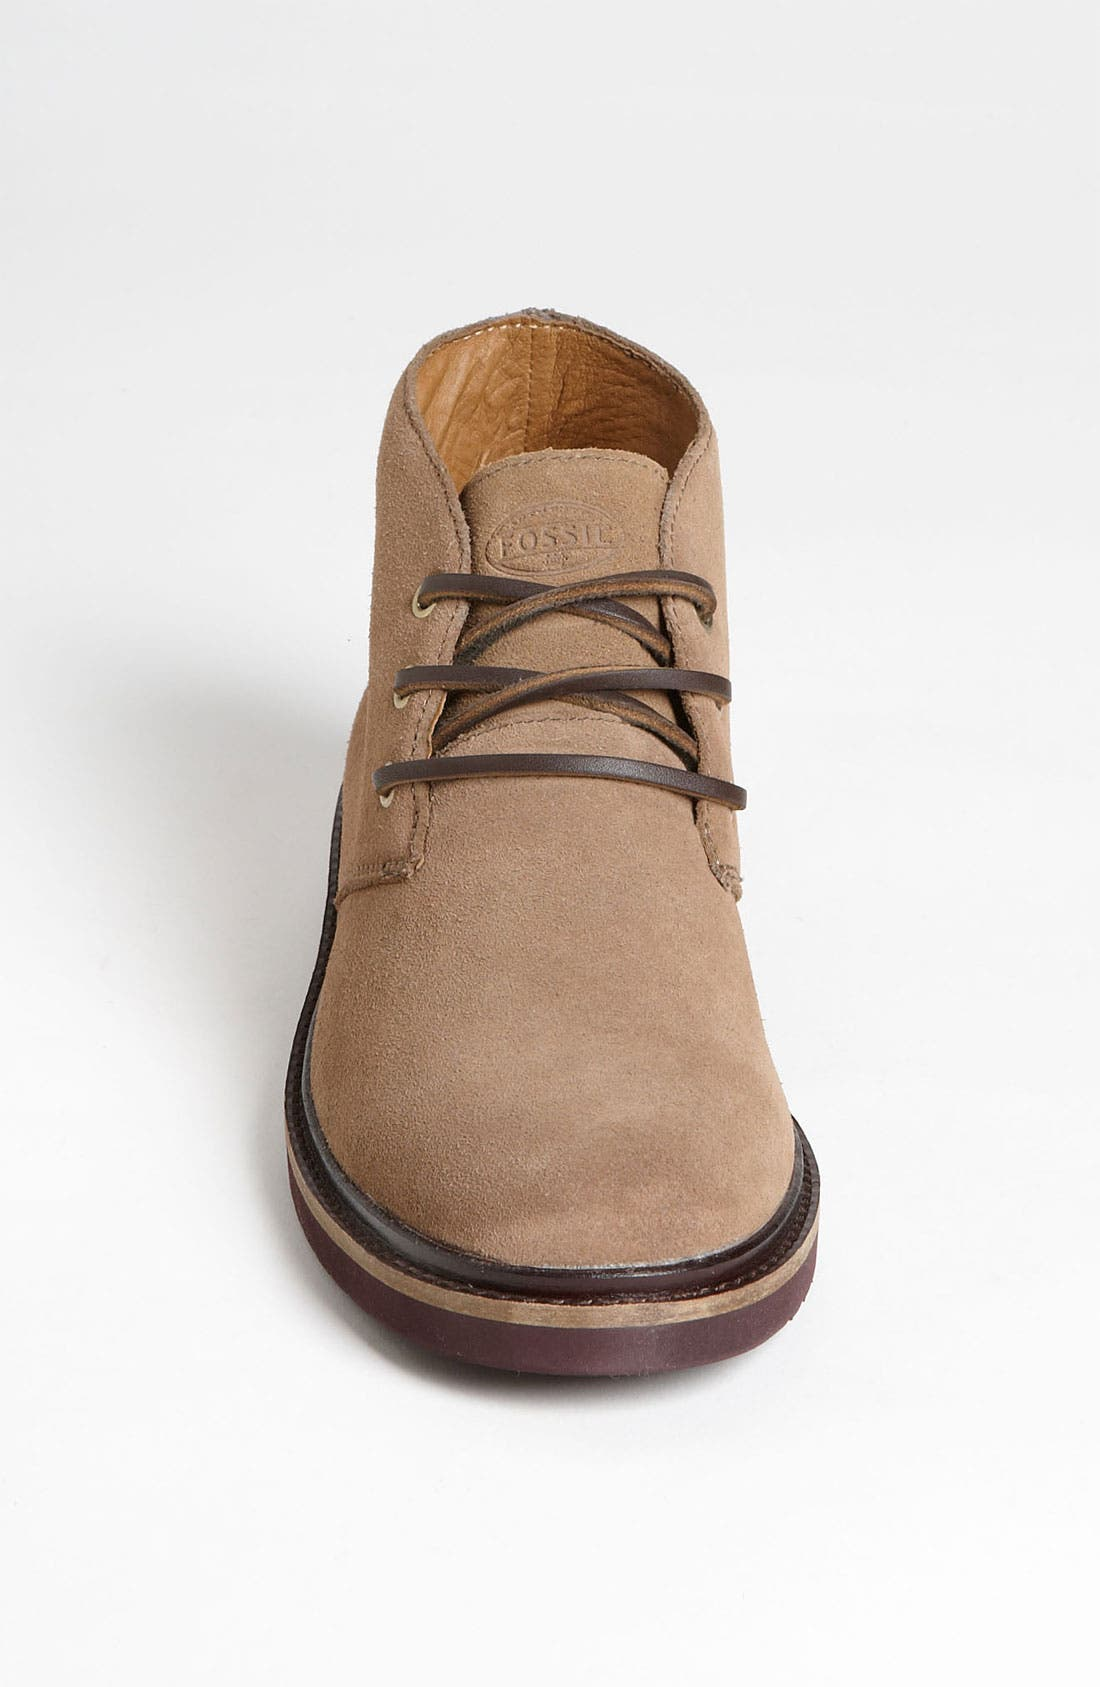 Alternate Image 3  - Fossil 'Winston' Chukka Boot